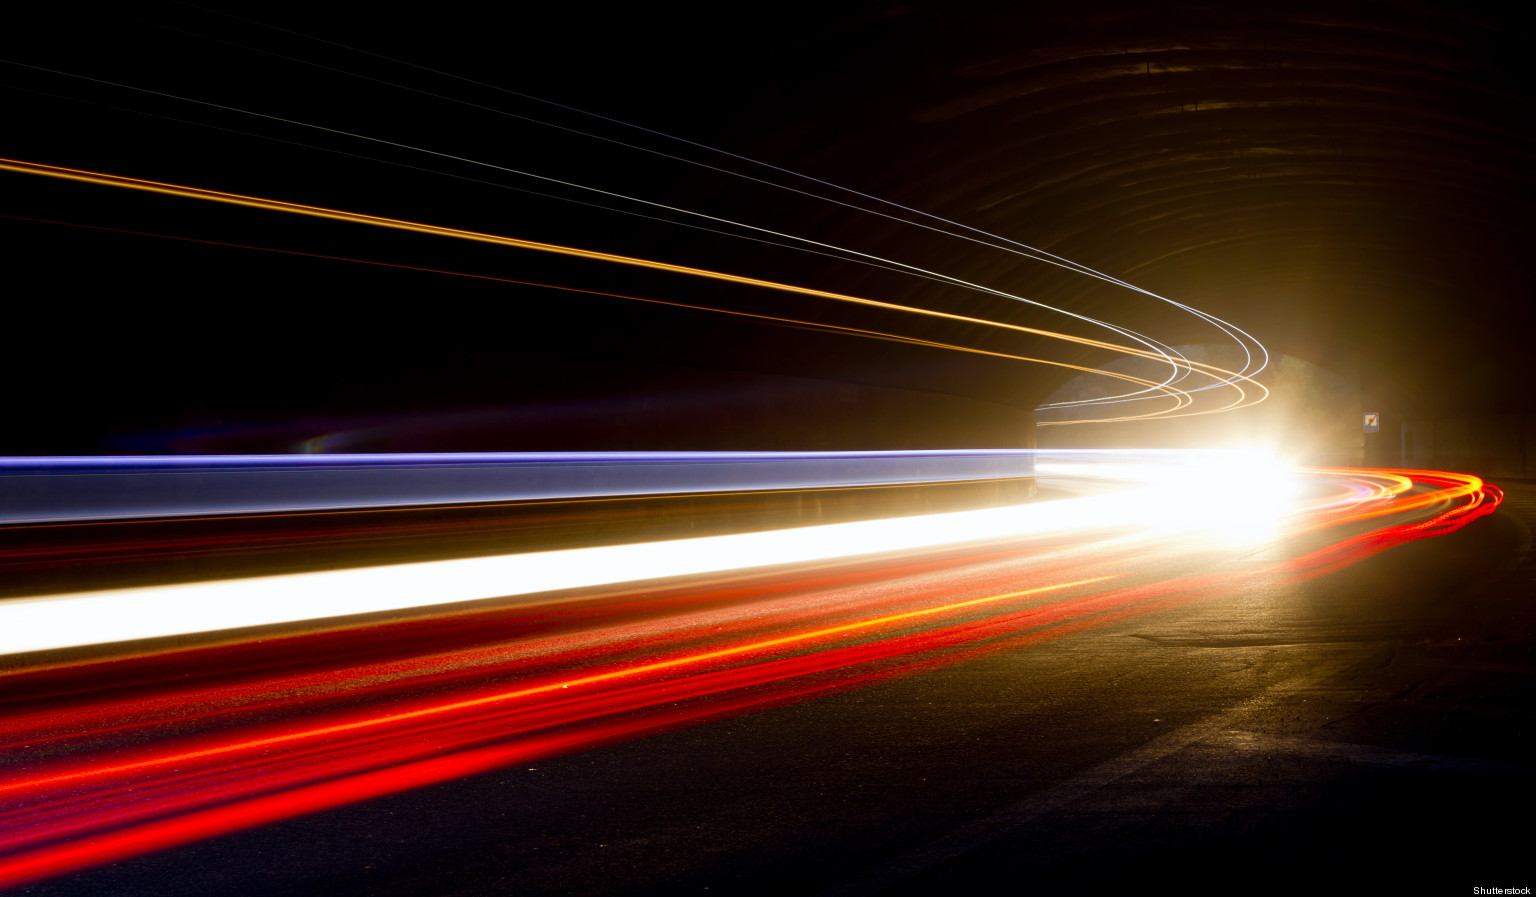 Has The Speed of Light Been Broken?